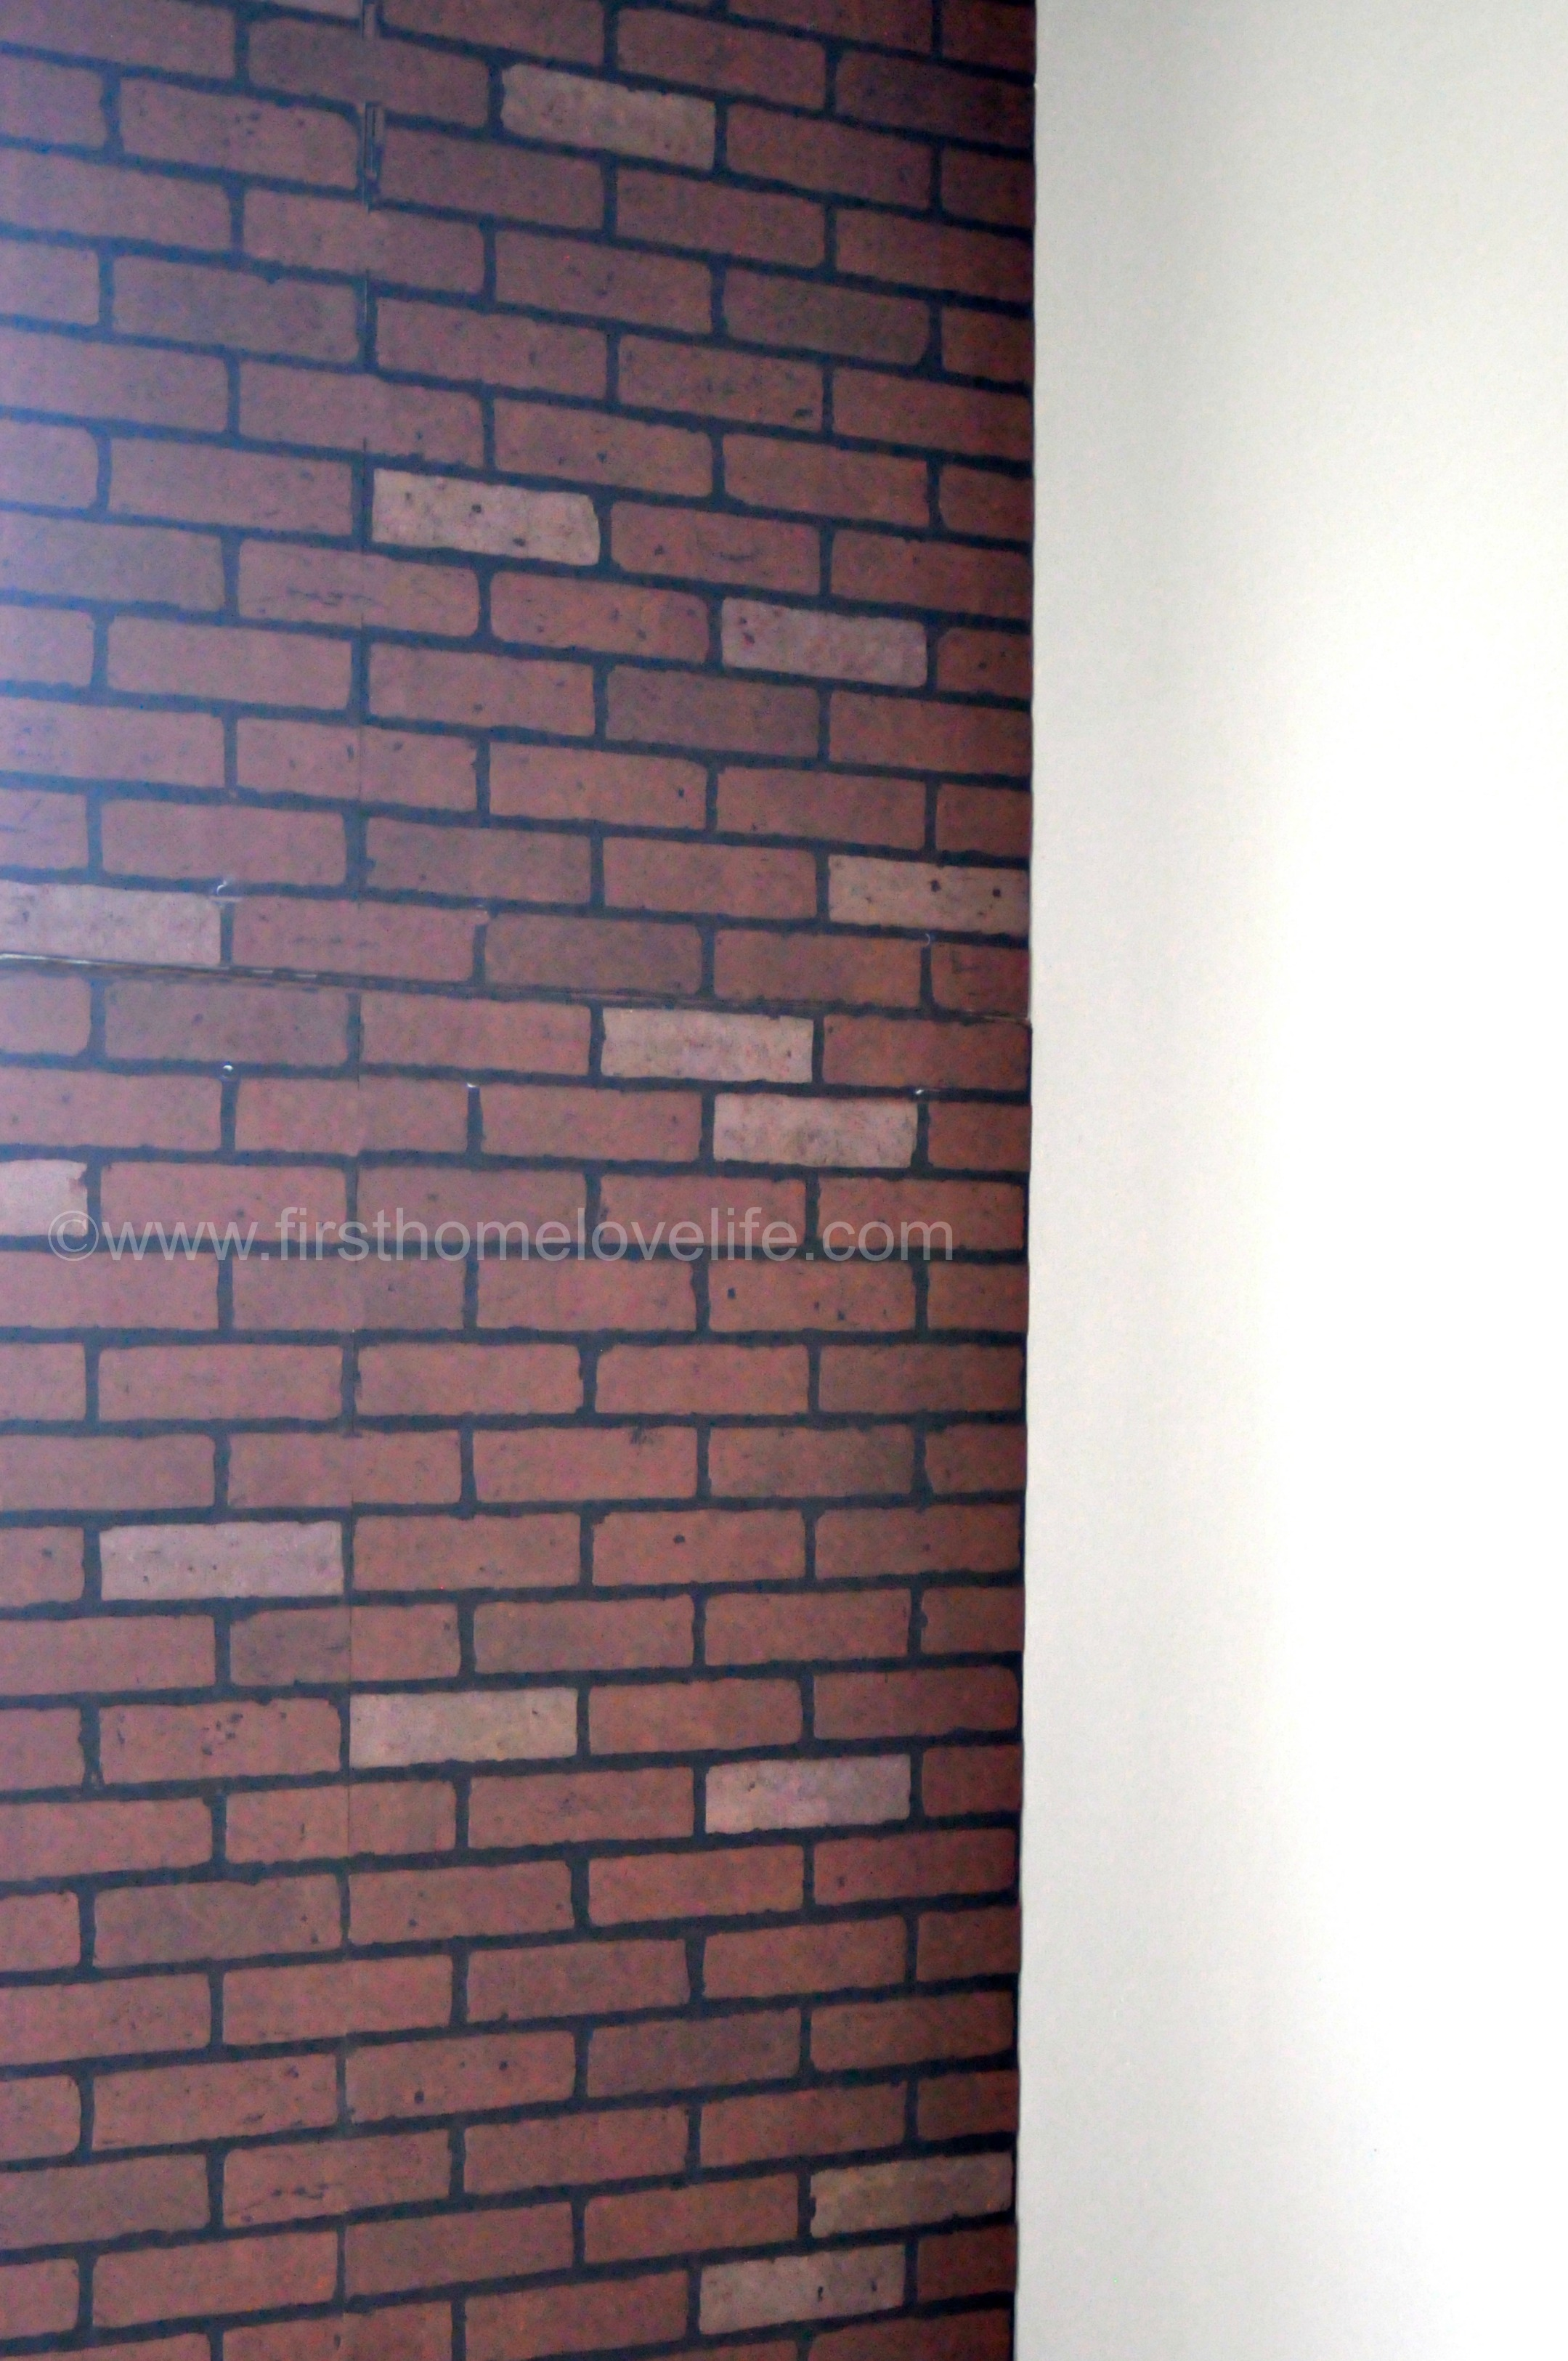 Faux brick ifying first home love life - Artificial brick wall panels ...